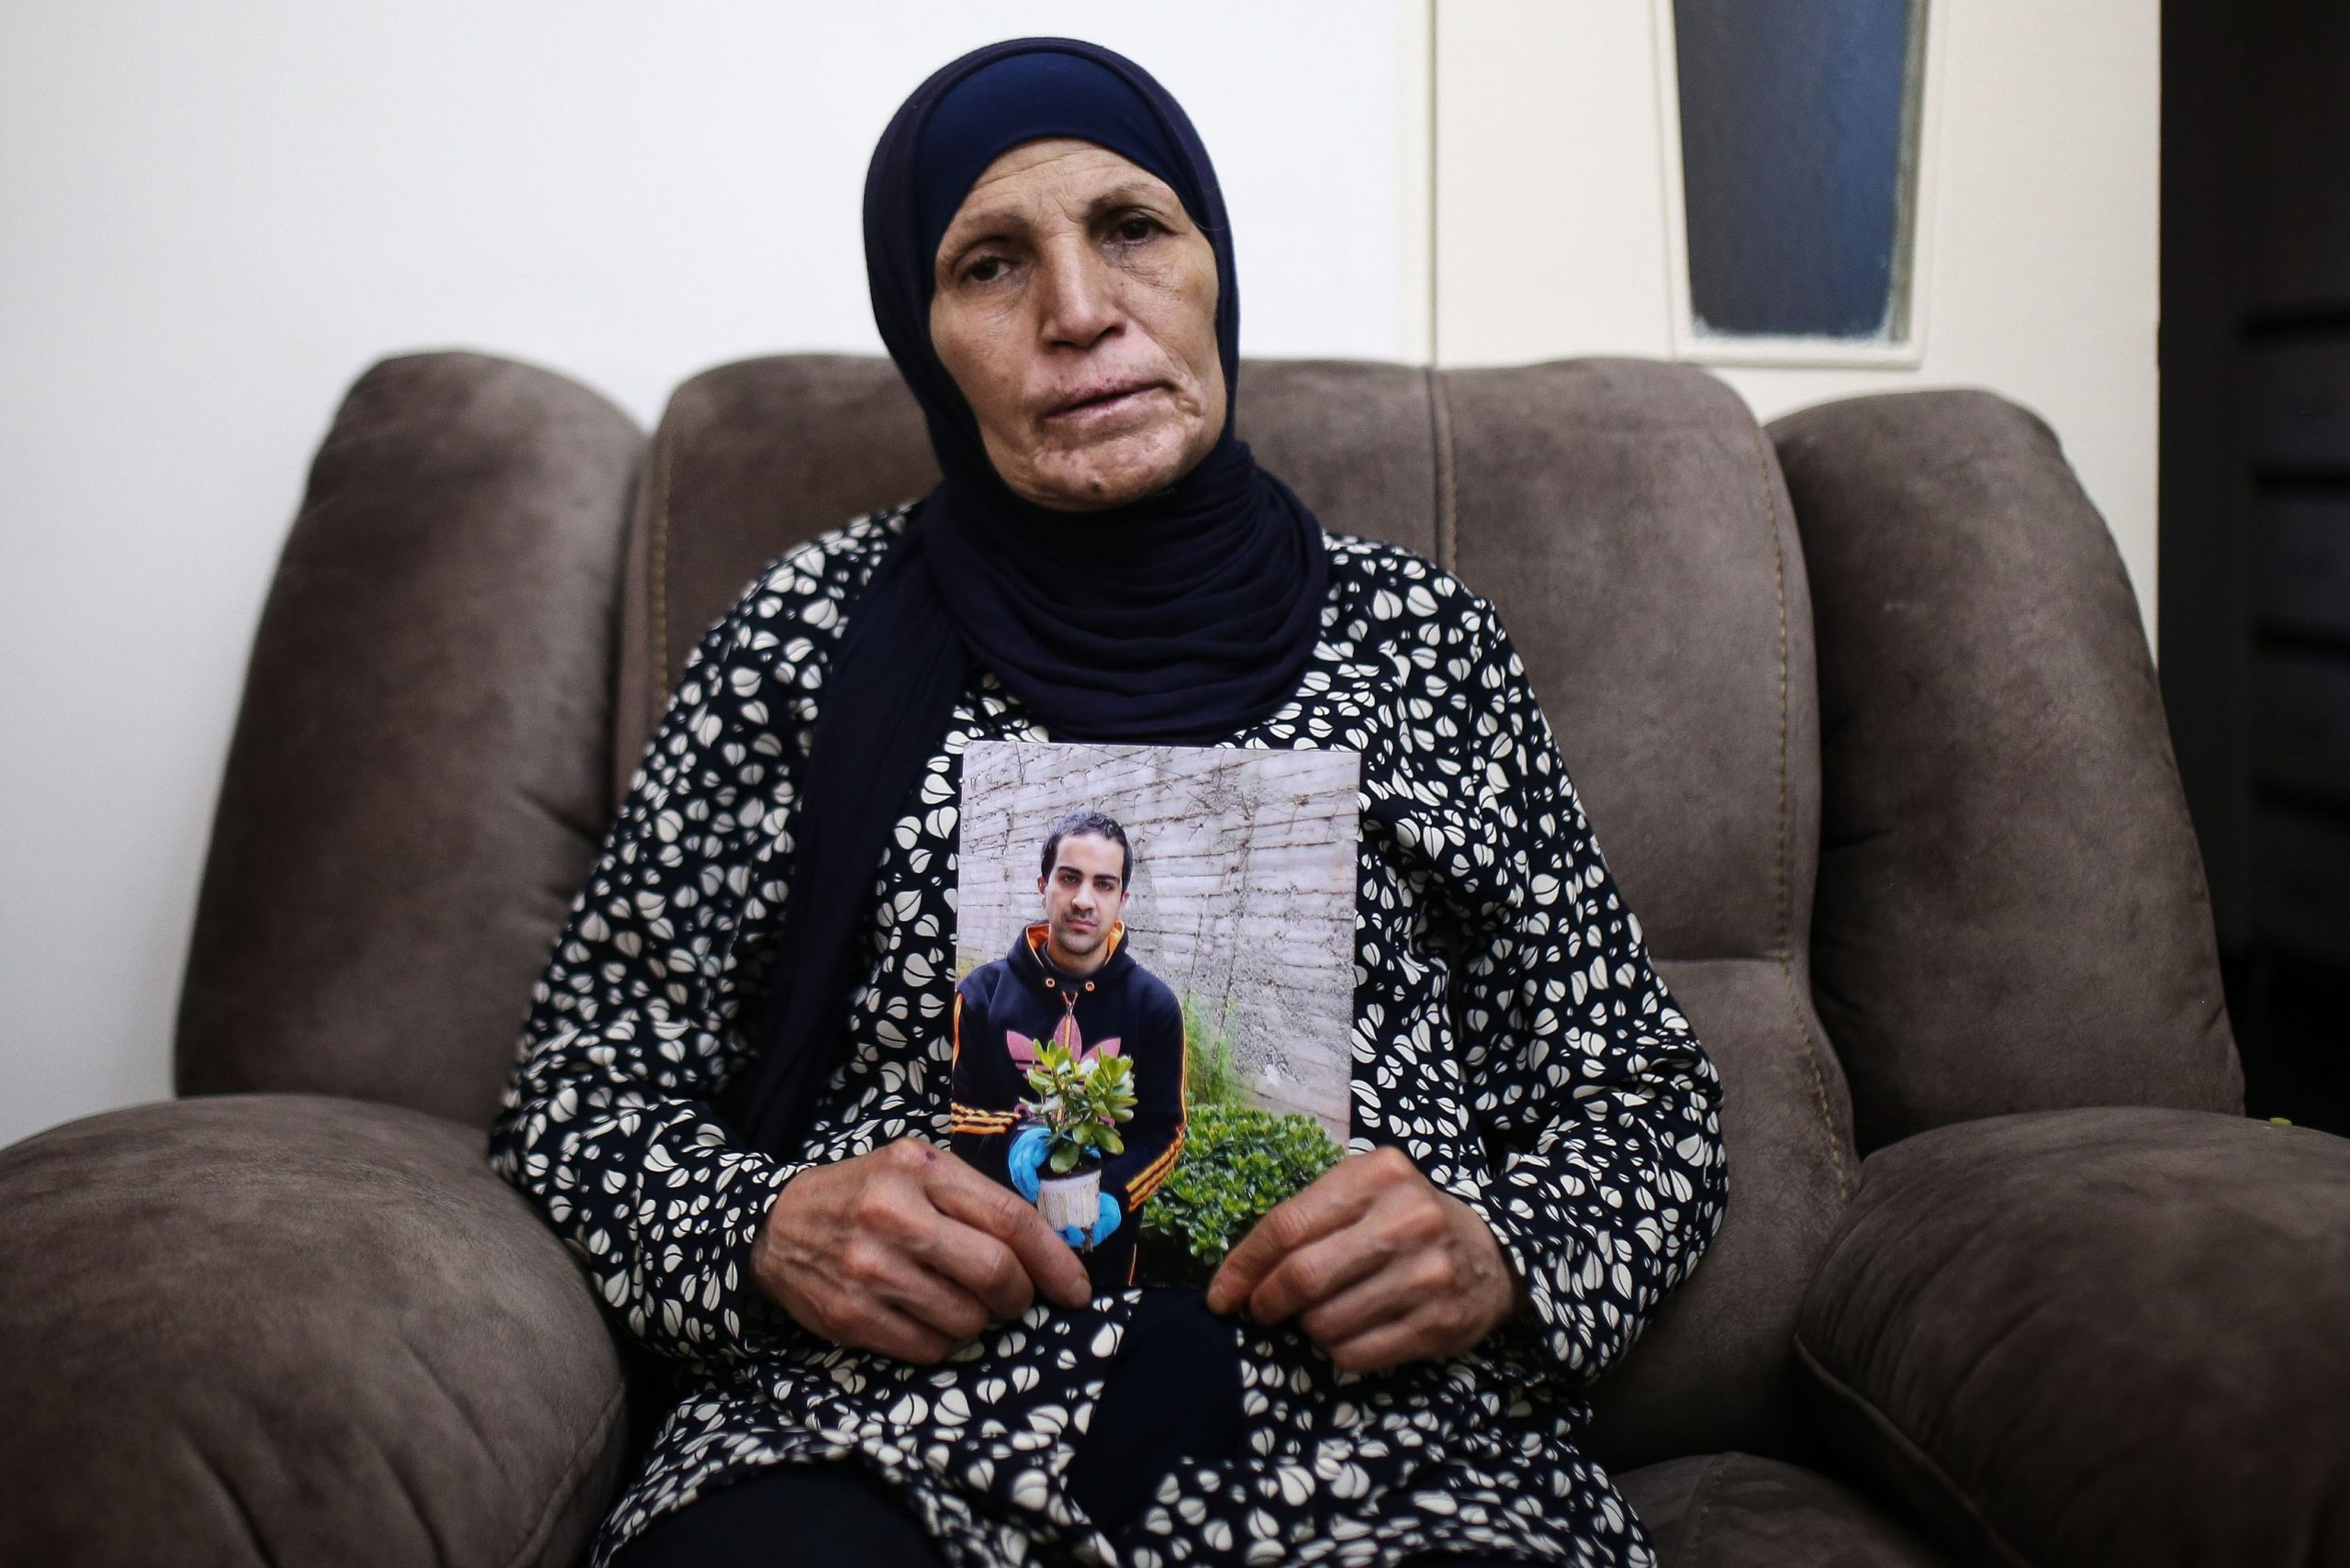 2 June 2020: Rana Hallak holds a photograph of her autistic son Iyad Hallak, 32, who was shot and killed by Israeli police in East Jerusalem's Old City on 30 May. (Photograph by Mostafa Alkharouf/ Anadolu Agency via Getty Images)